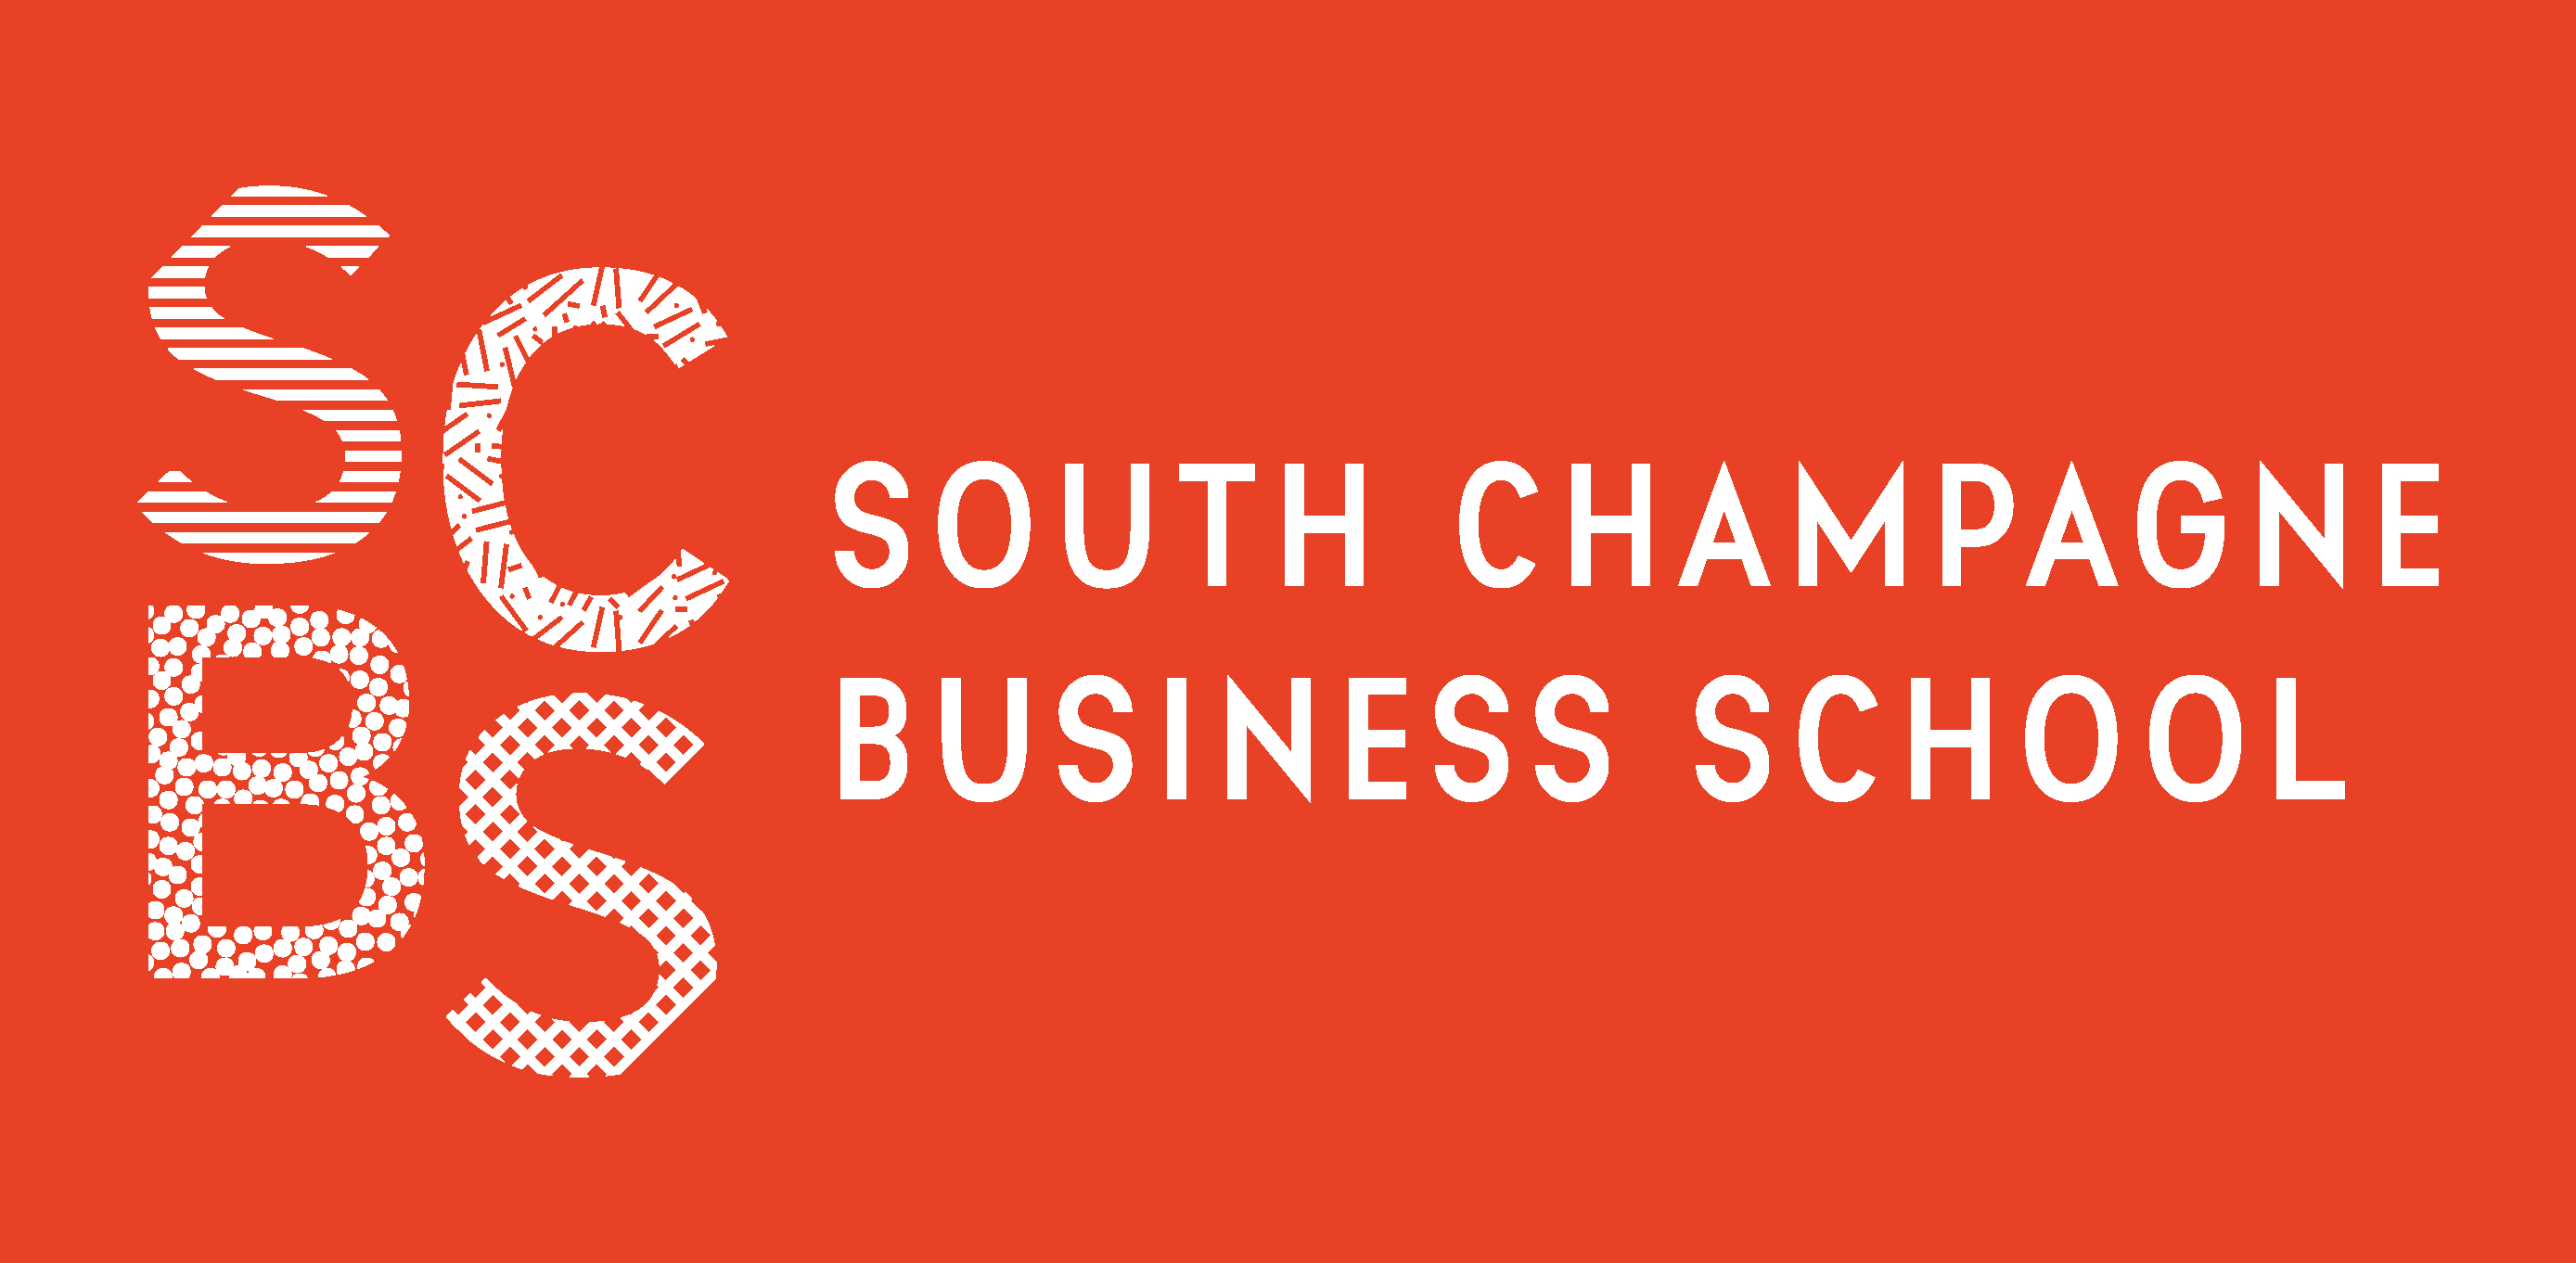 South Champagne Business School